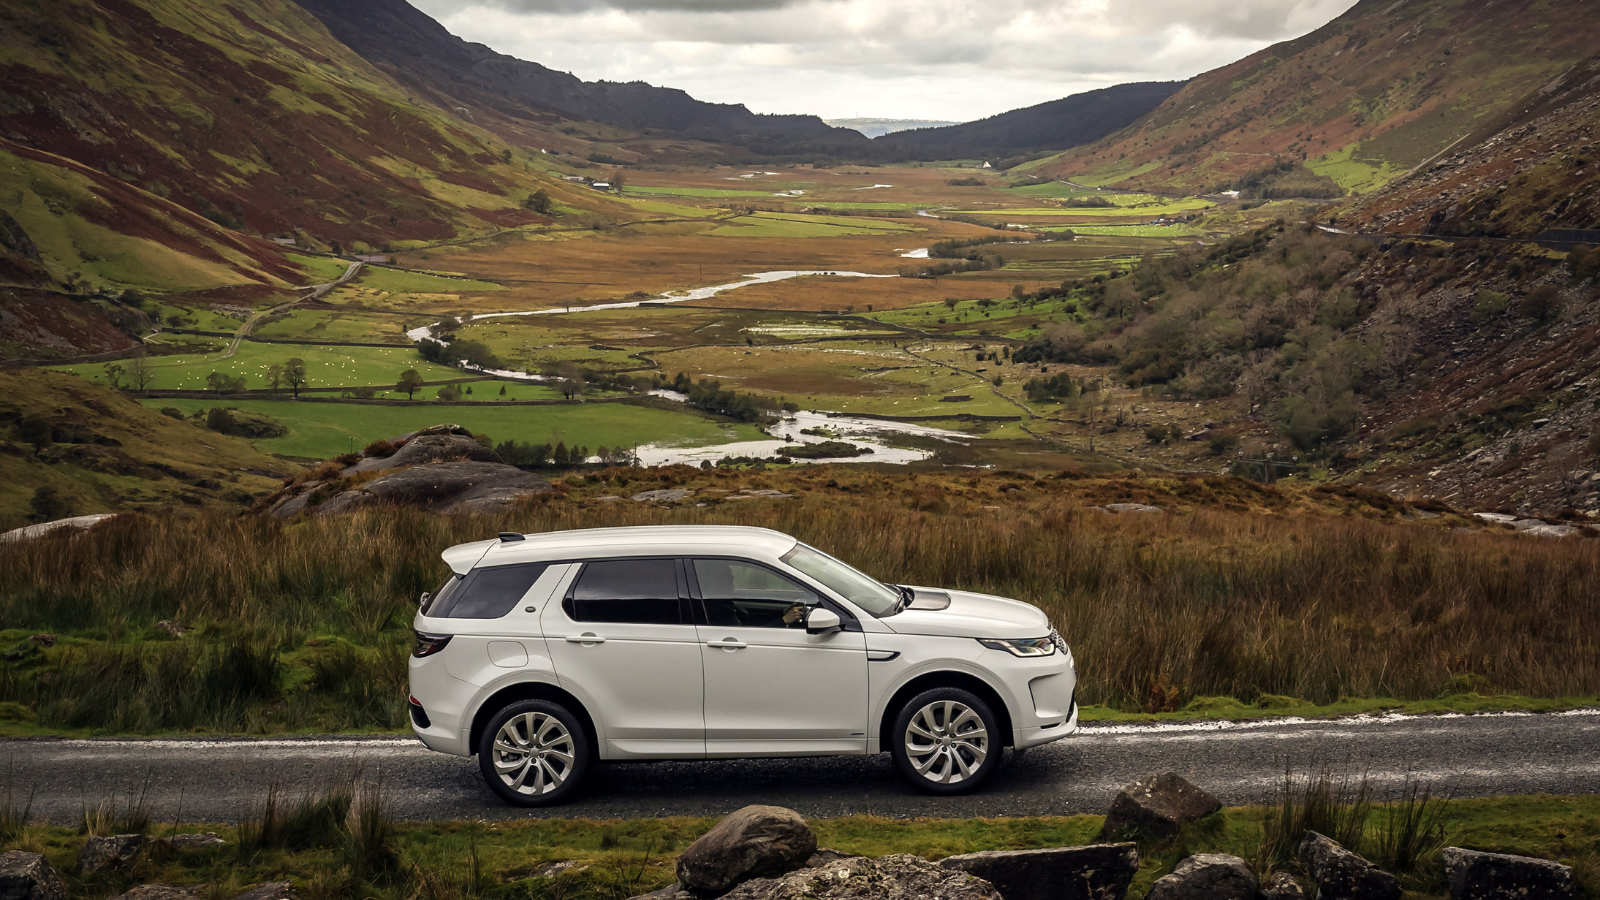 DISCOVERY SPORT VS EVOQUE - WHAT'S THE RIGHT MODEL FOR YOU?